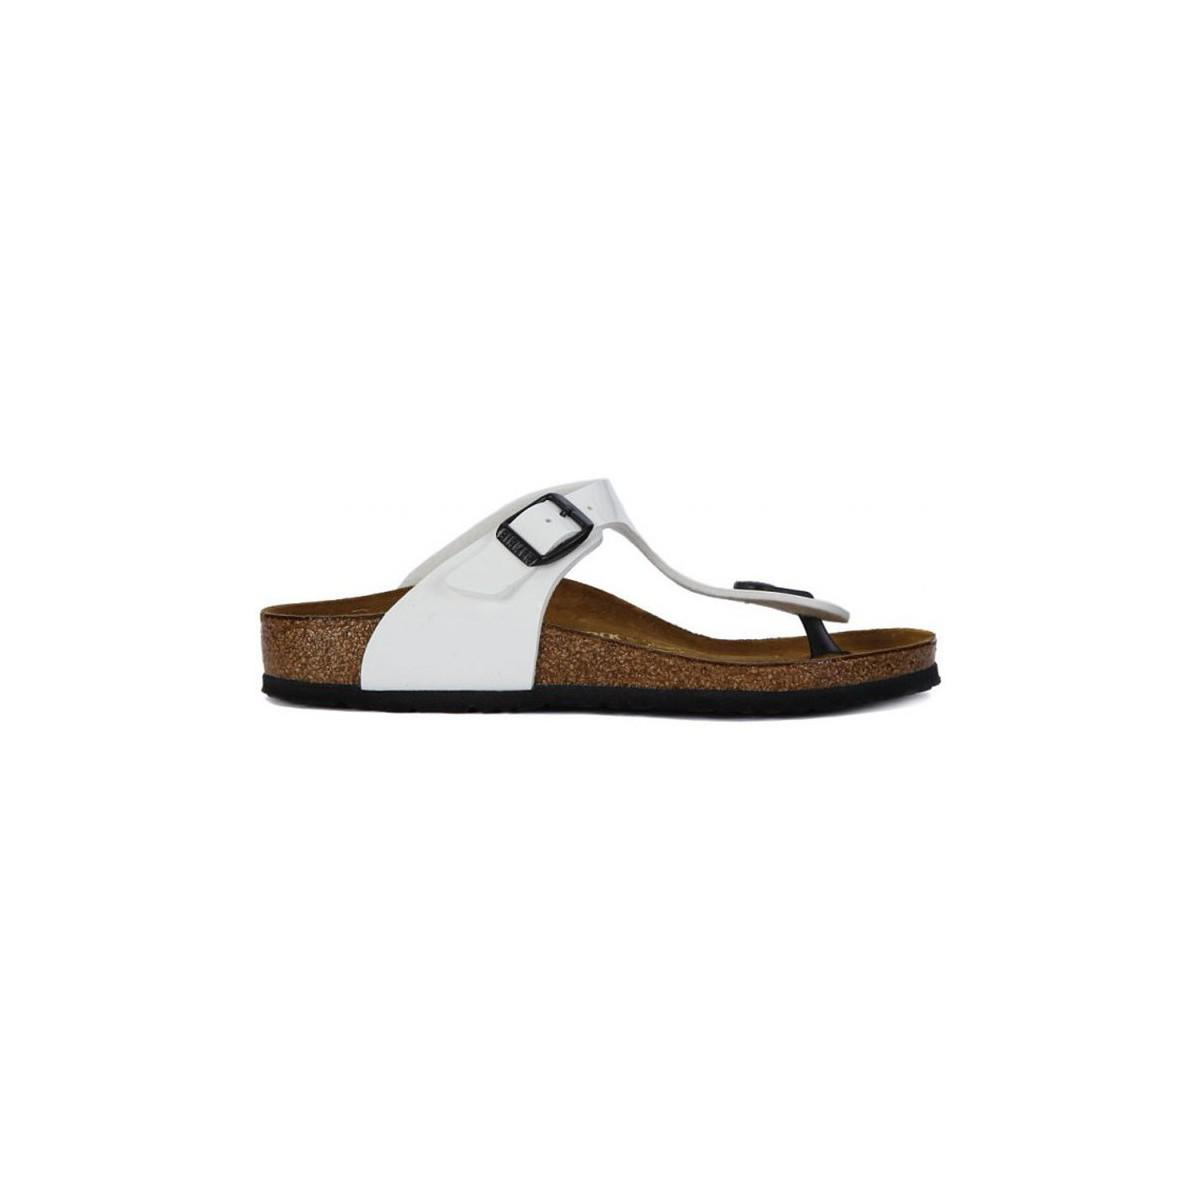 98529765b7f8 Gallery. Previously sold at  Spartoo · Men s Leather Flip Flops Men s  Birkenstock ...